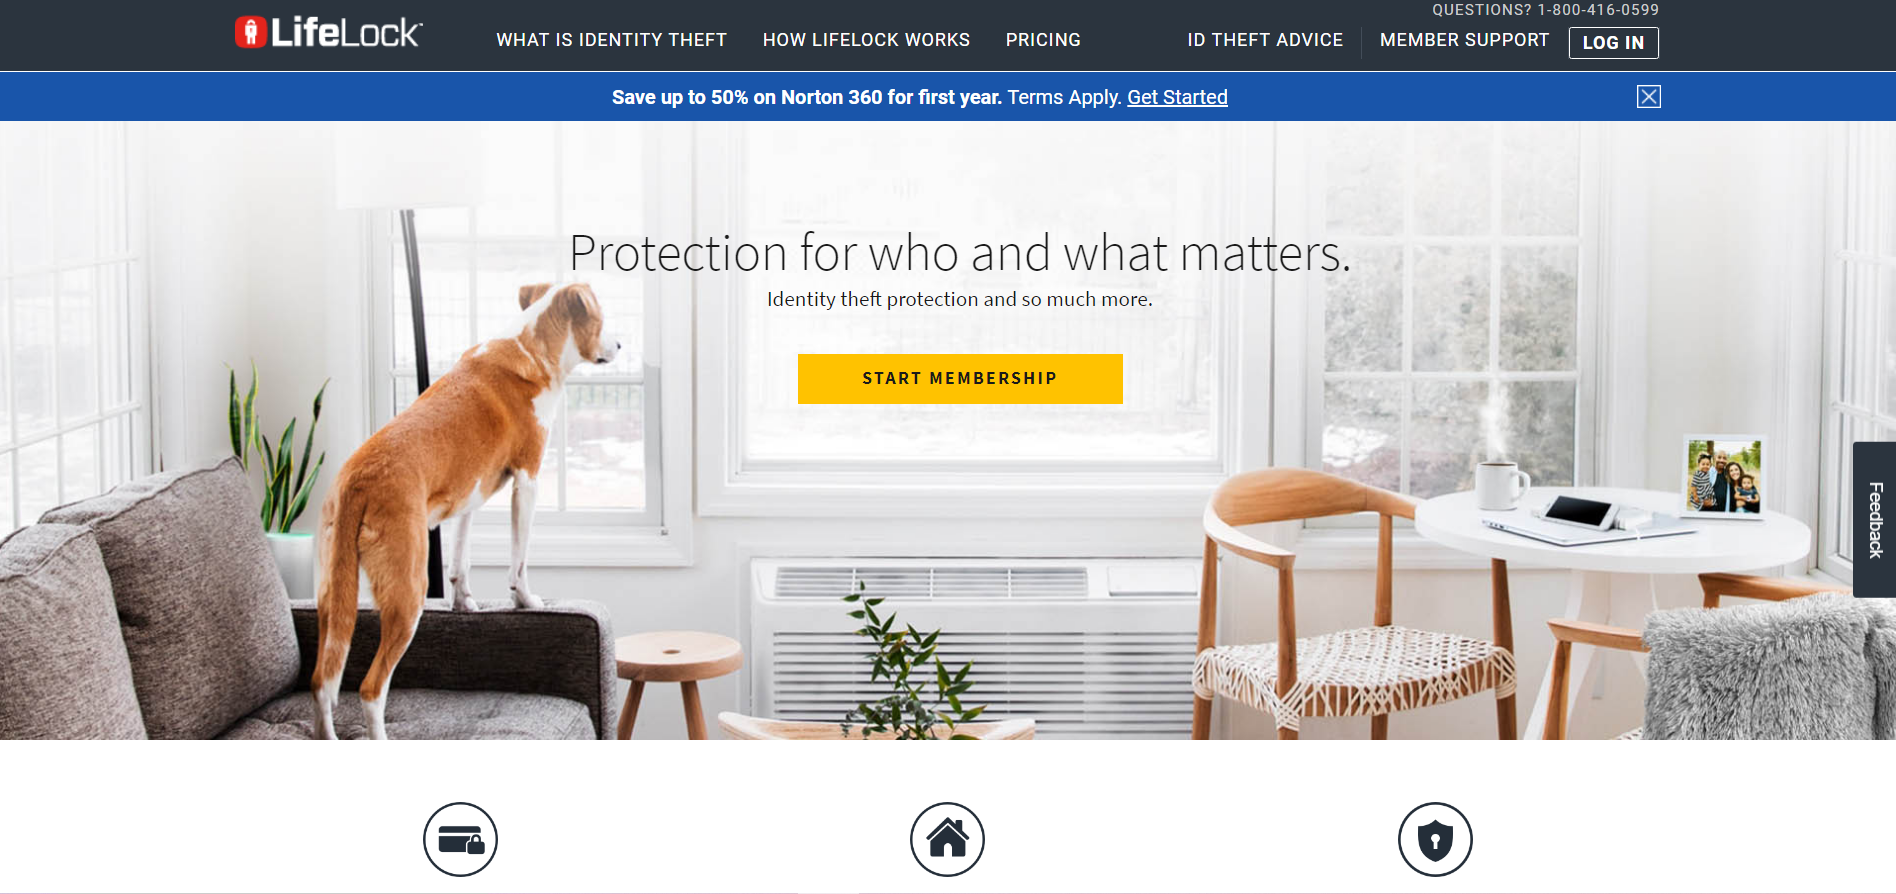 A screenshot of the LifeLock website homepage.